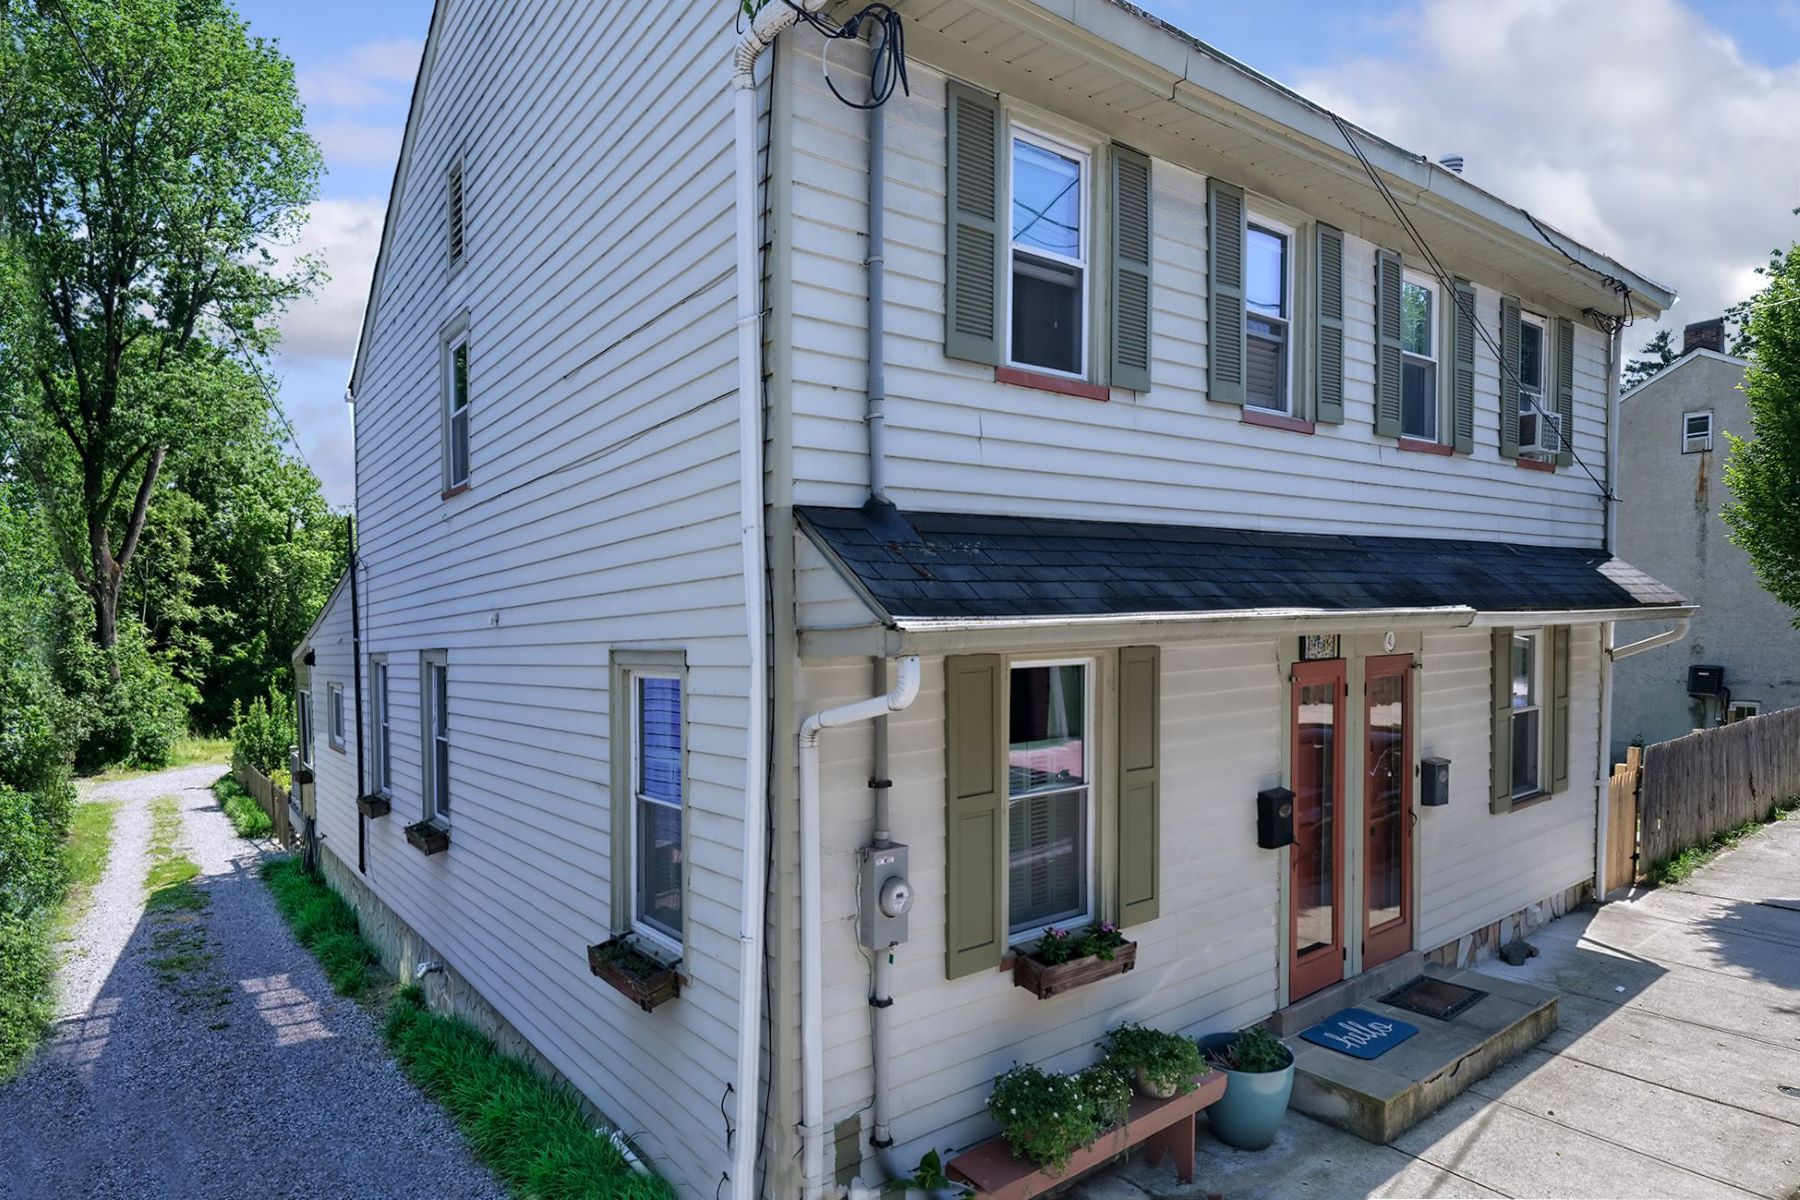 Single Family Homes for Sale at Don't Let This One Get Away! 43 Ferry Street, Lambertville, New Jersey 08530 United States